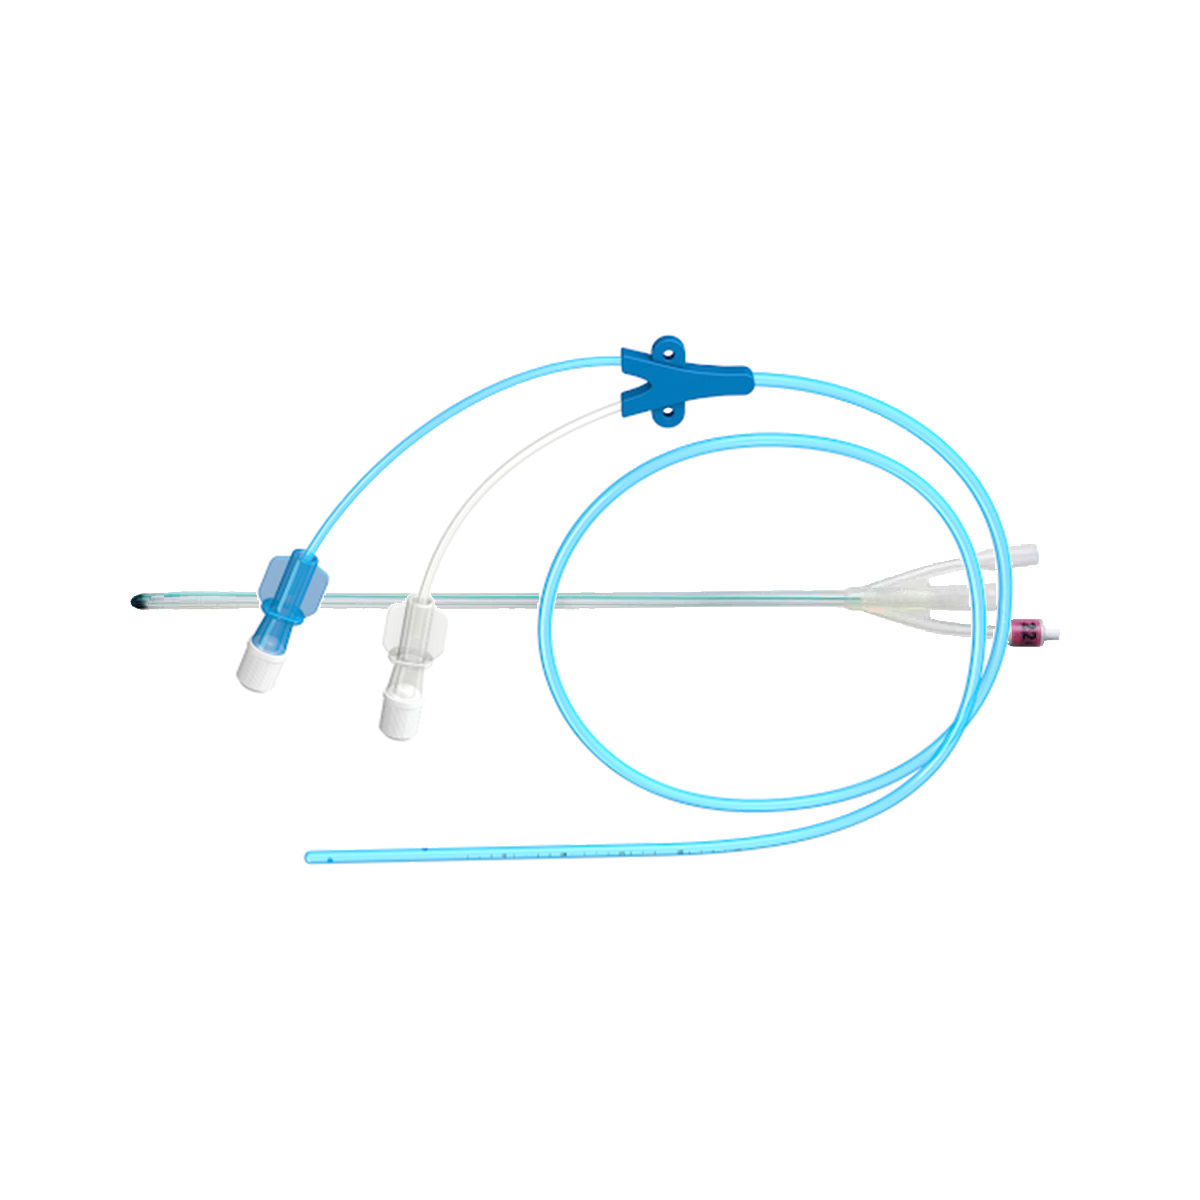 Cystometry catheters